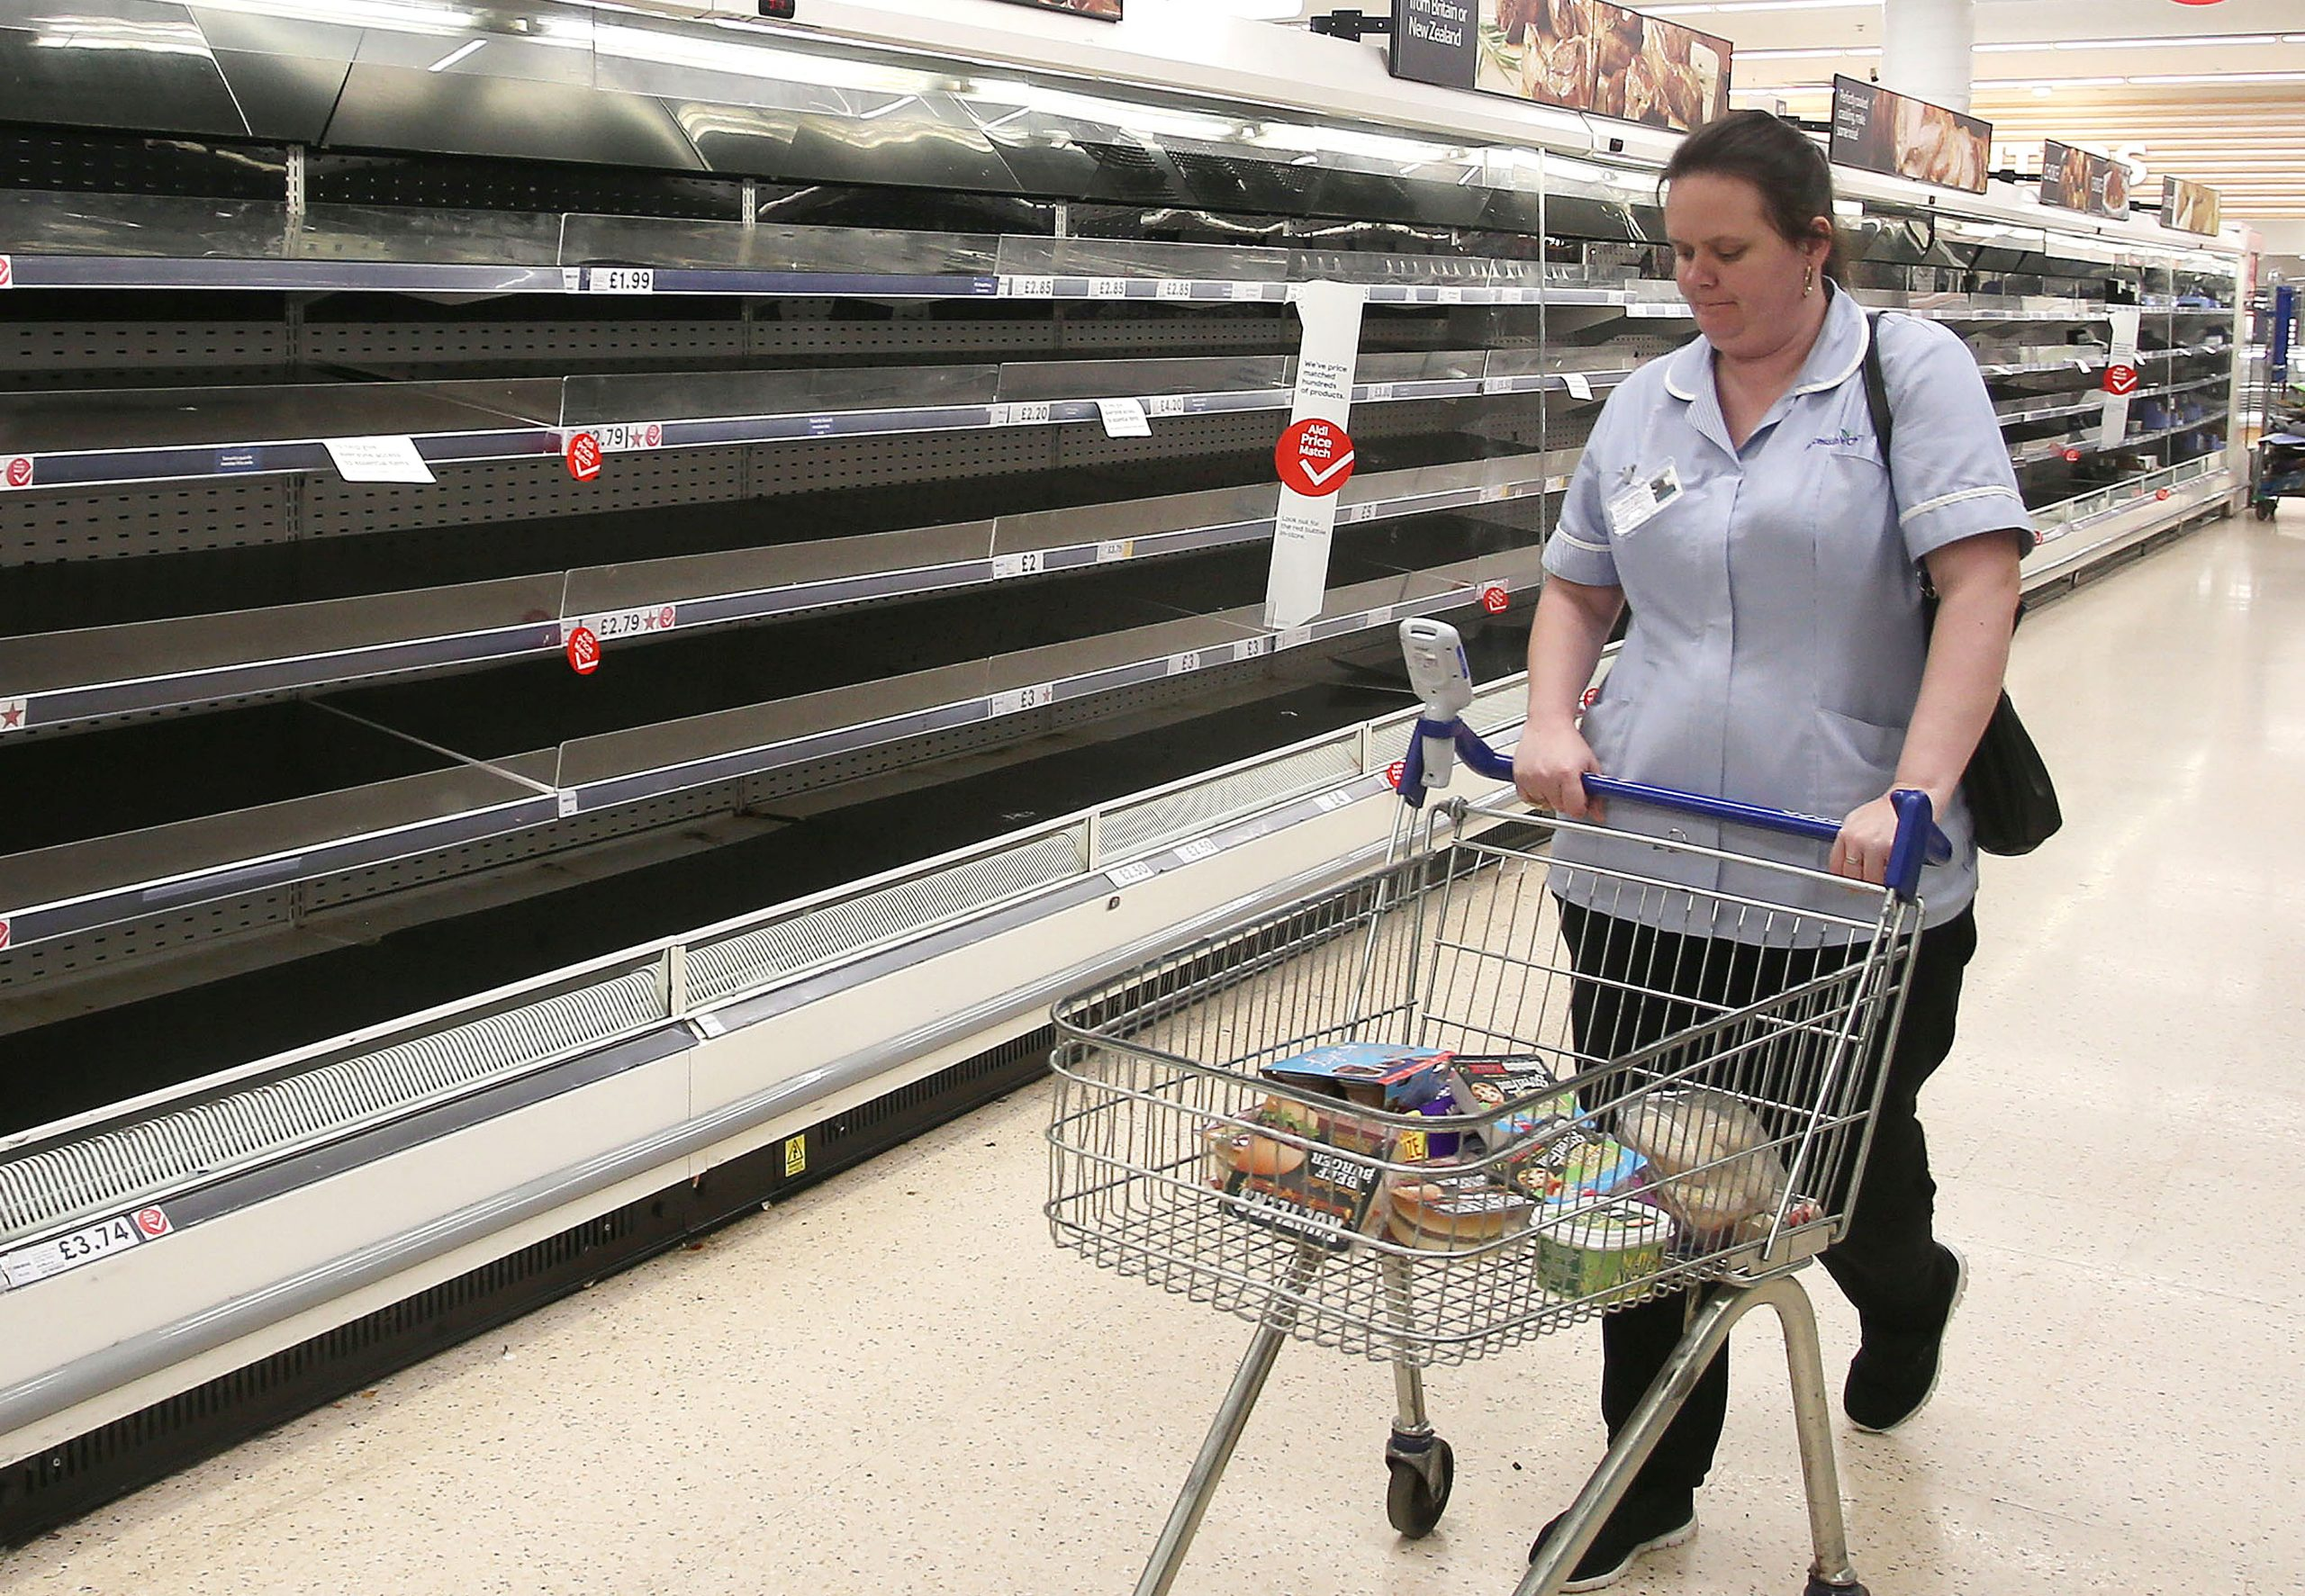 A nurse looking at empty shelves at Tesco. Coronavirus: Tesco store introduces one-item limit on essentials such as bread and milk